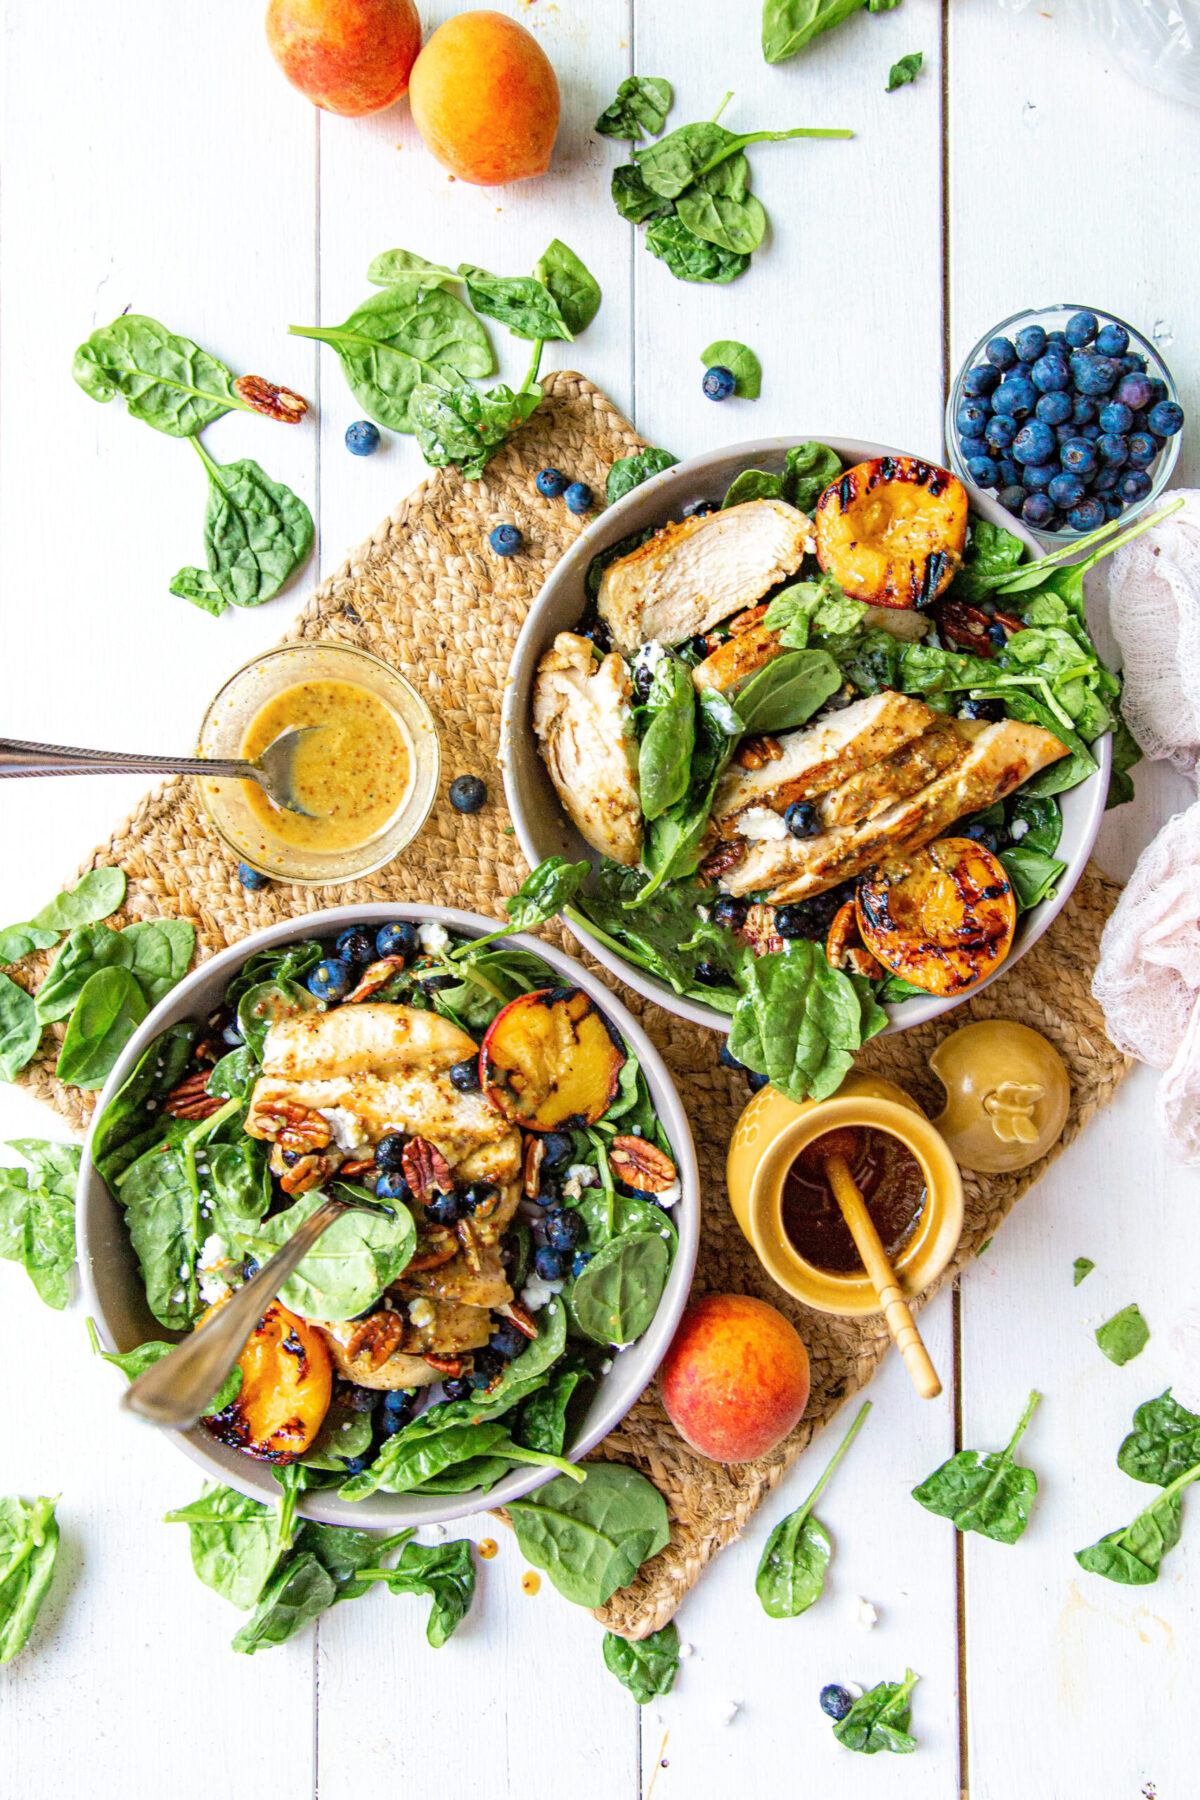 spinach salad with grilled chicken, blueberries and peaches two bowls